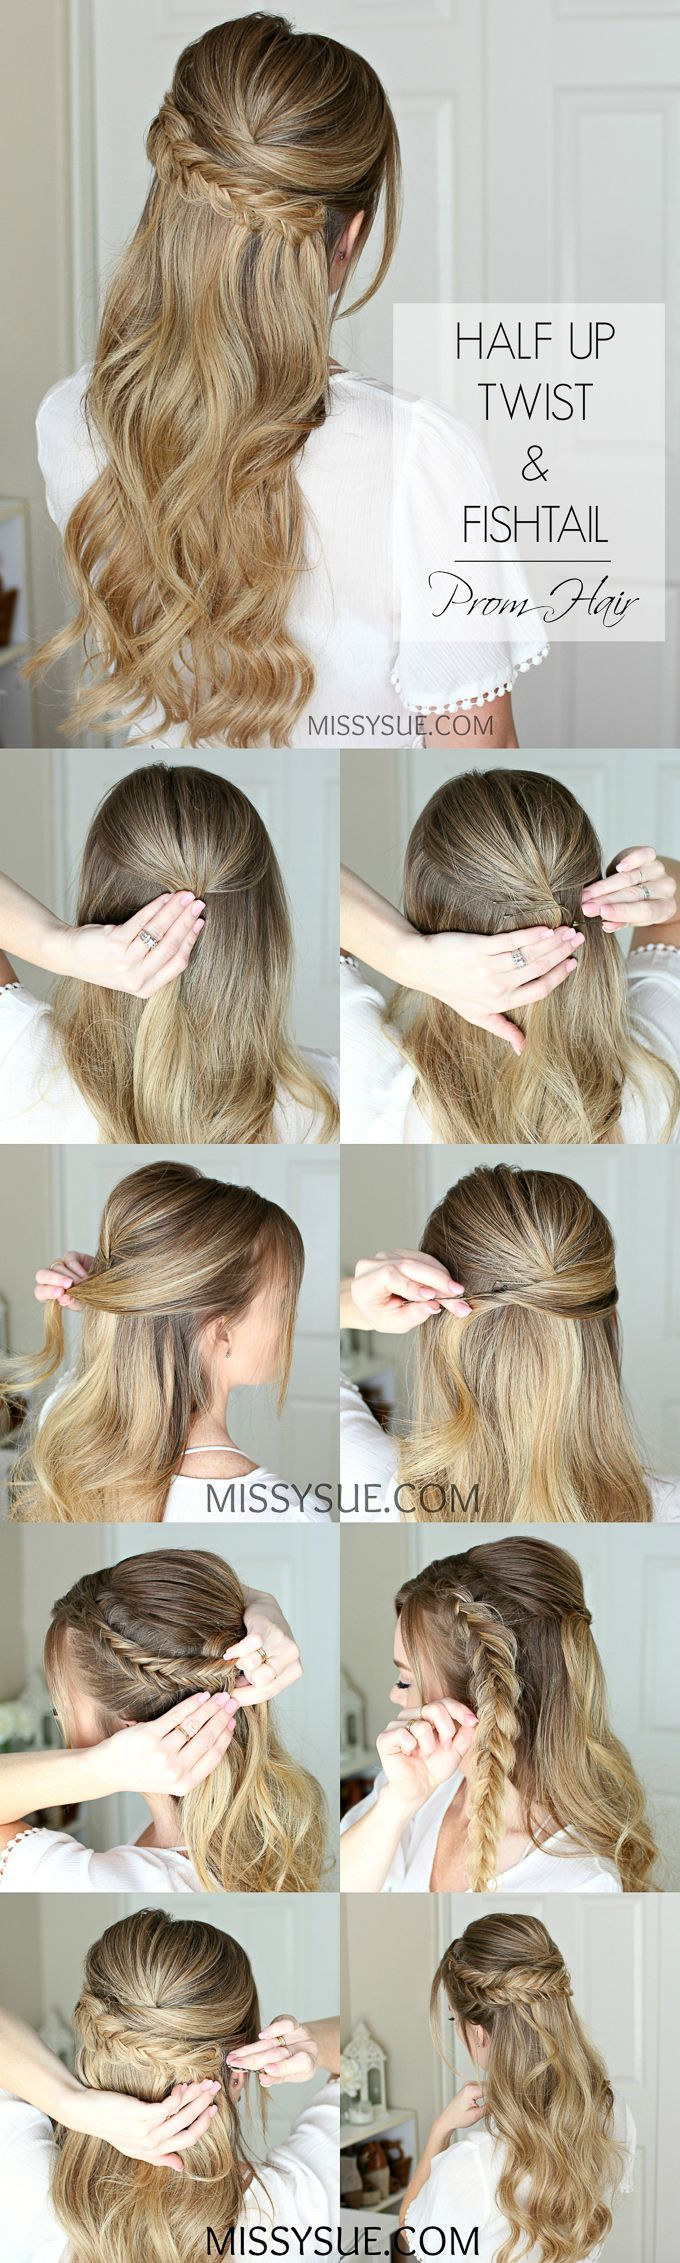 Easy Half Up Prom Hair Missy Sue With Images Braided Hairstyles Easy Prom Hair Tutorial Hair Beauty